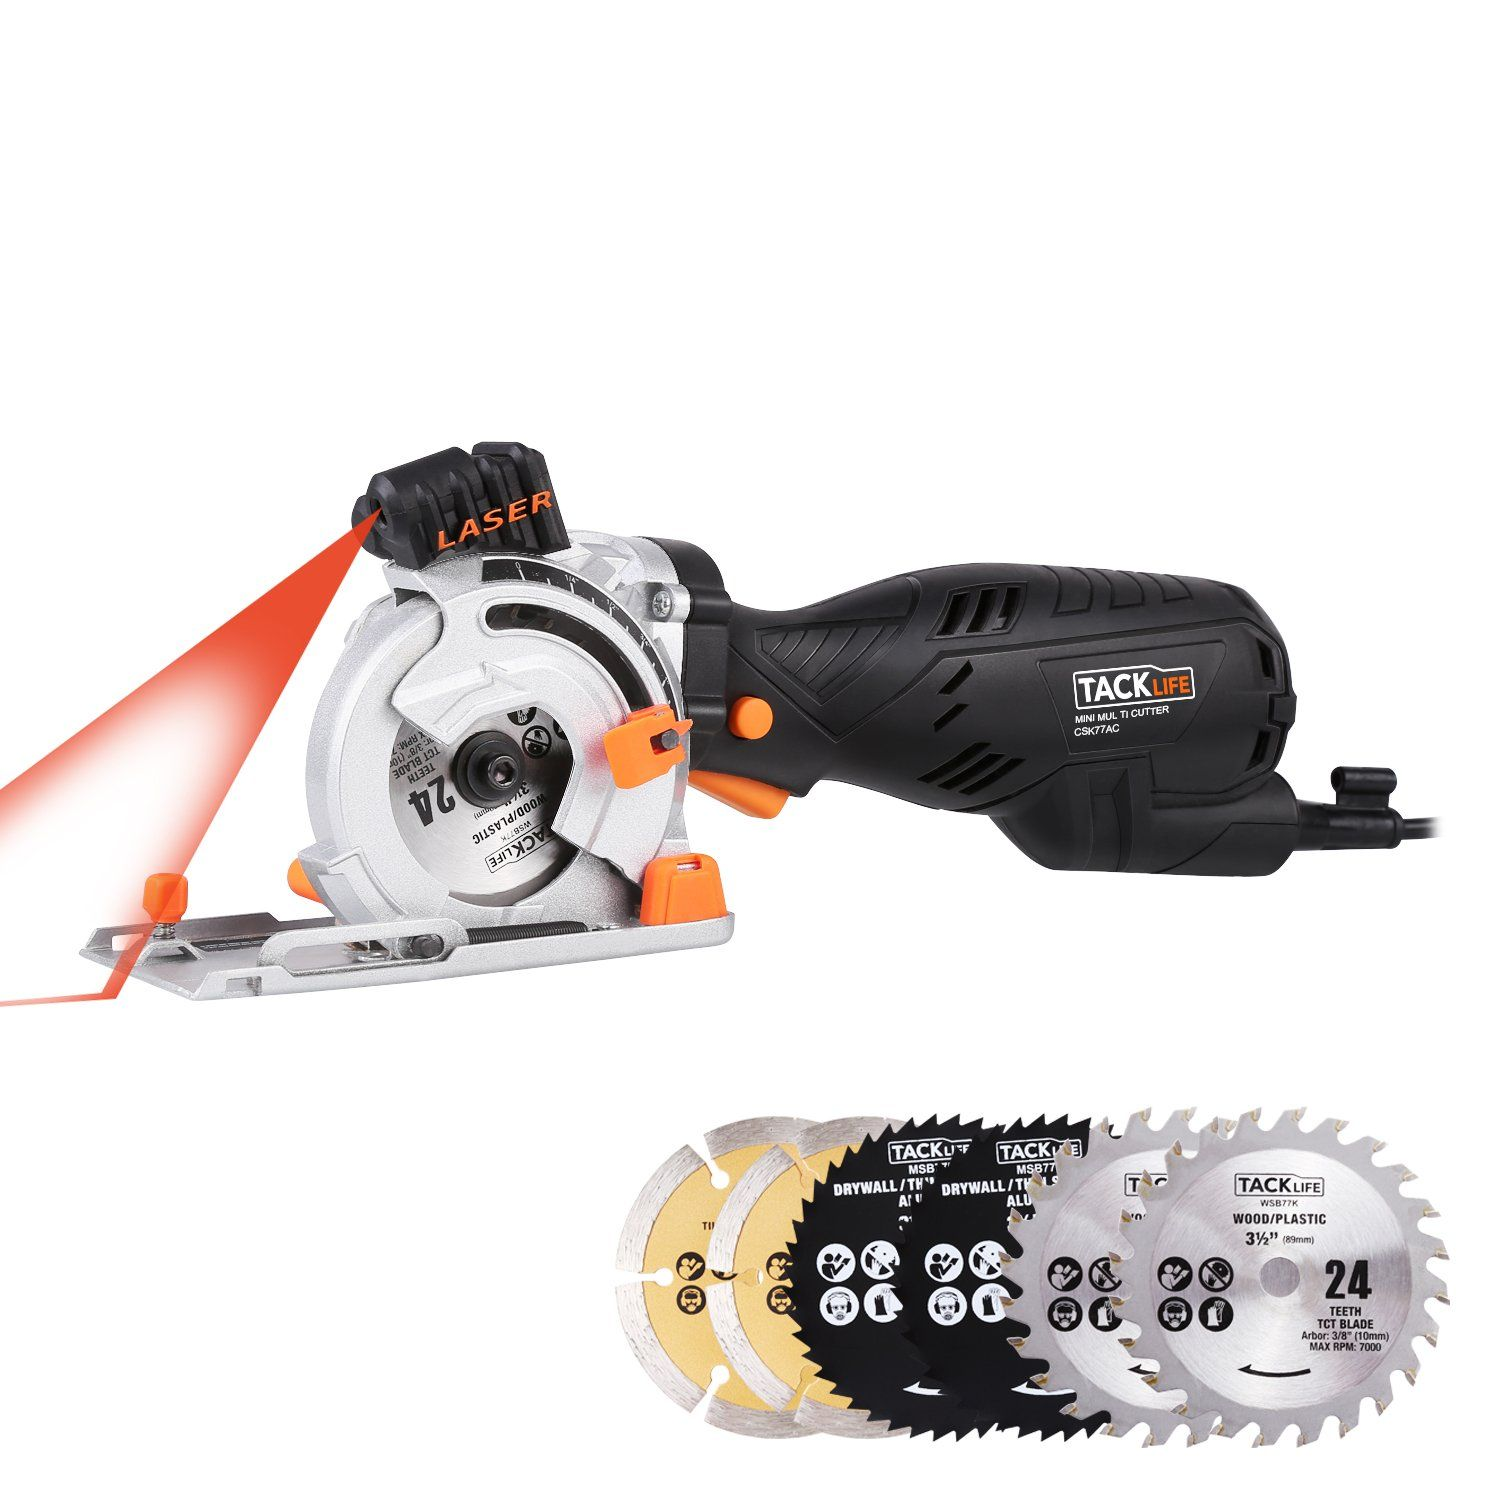 Tacklife mini circular saw csk77ac classic circular saw 705w 58 tacklife mini circular saw classic circular saw a equivalent to 4500 rpm left handed blade keyboard keysfo Gallery